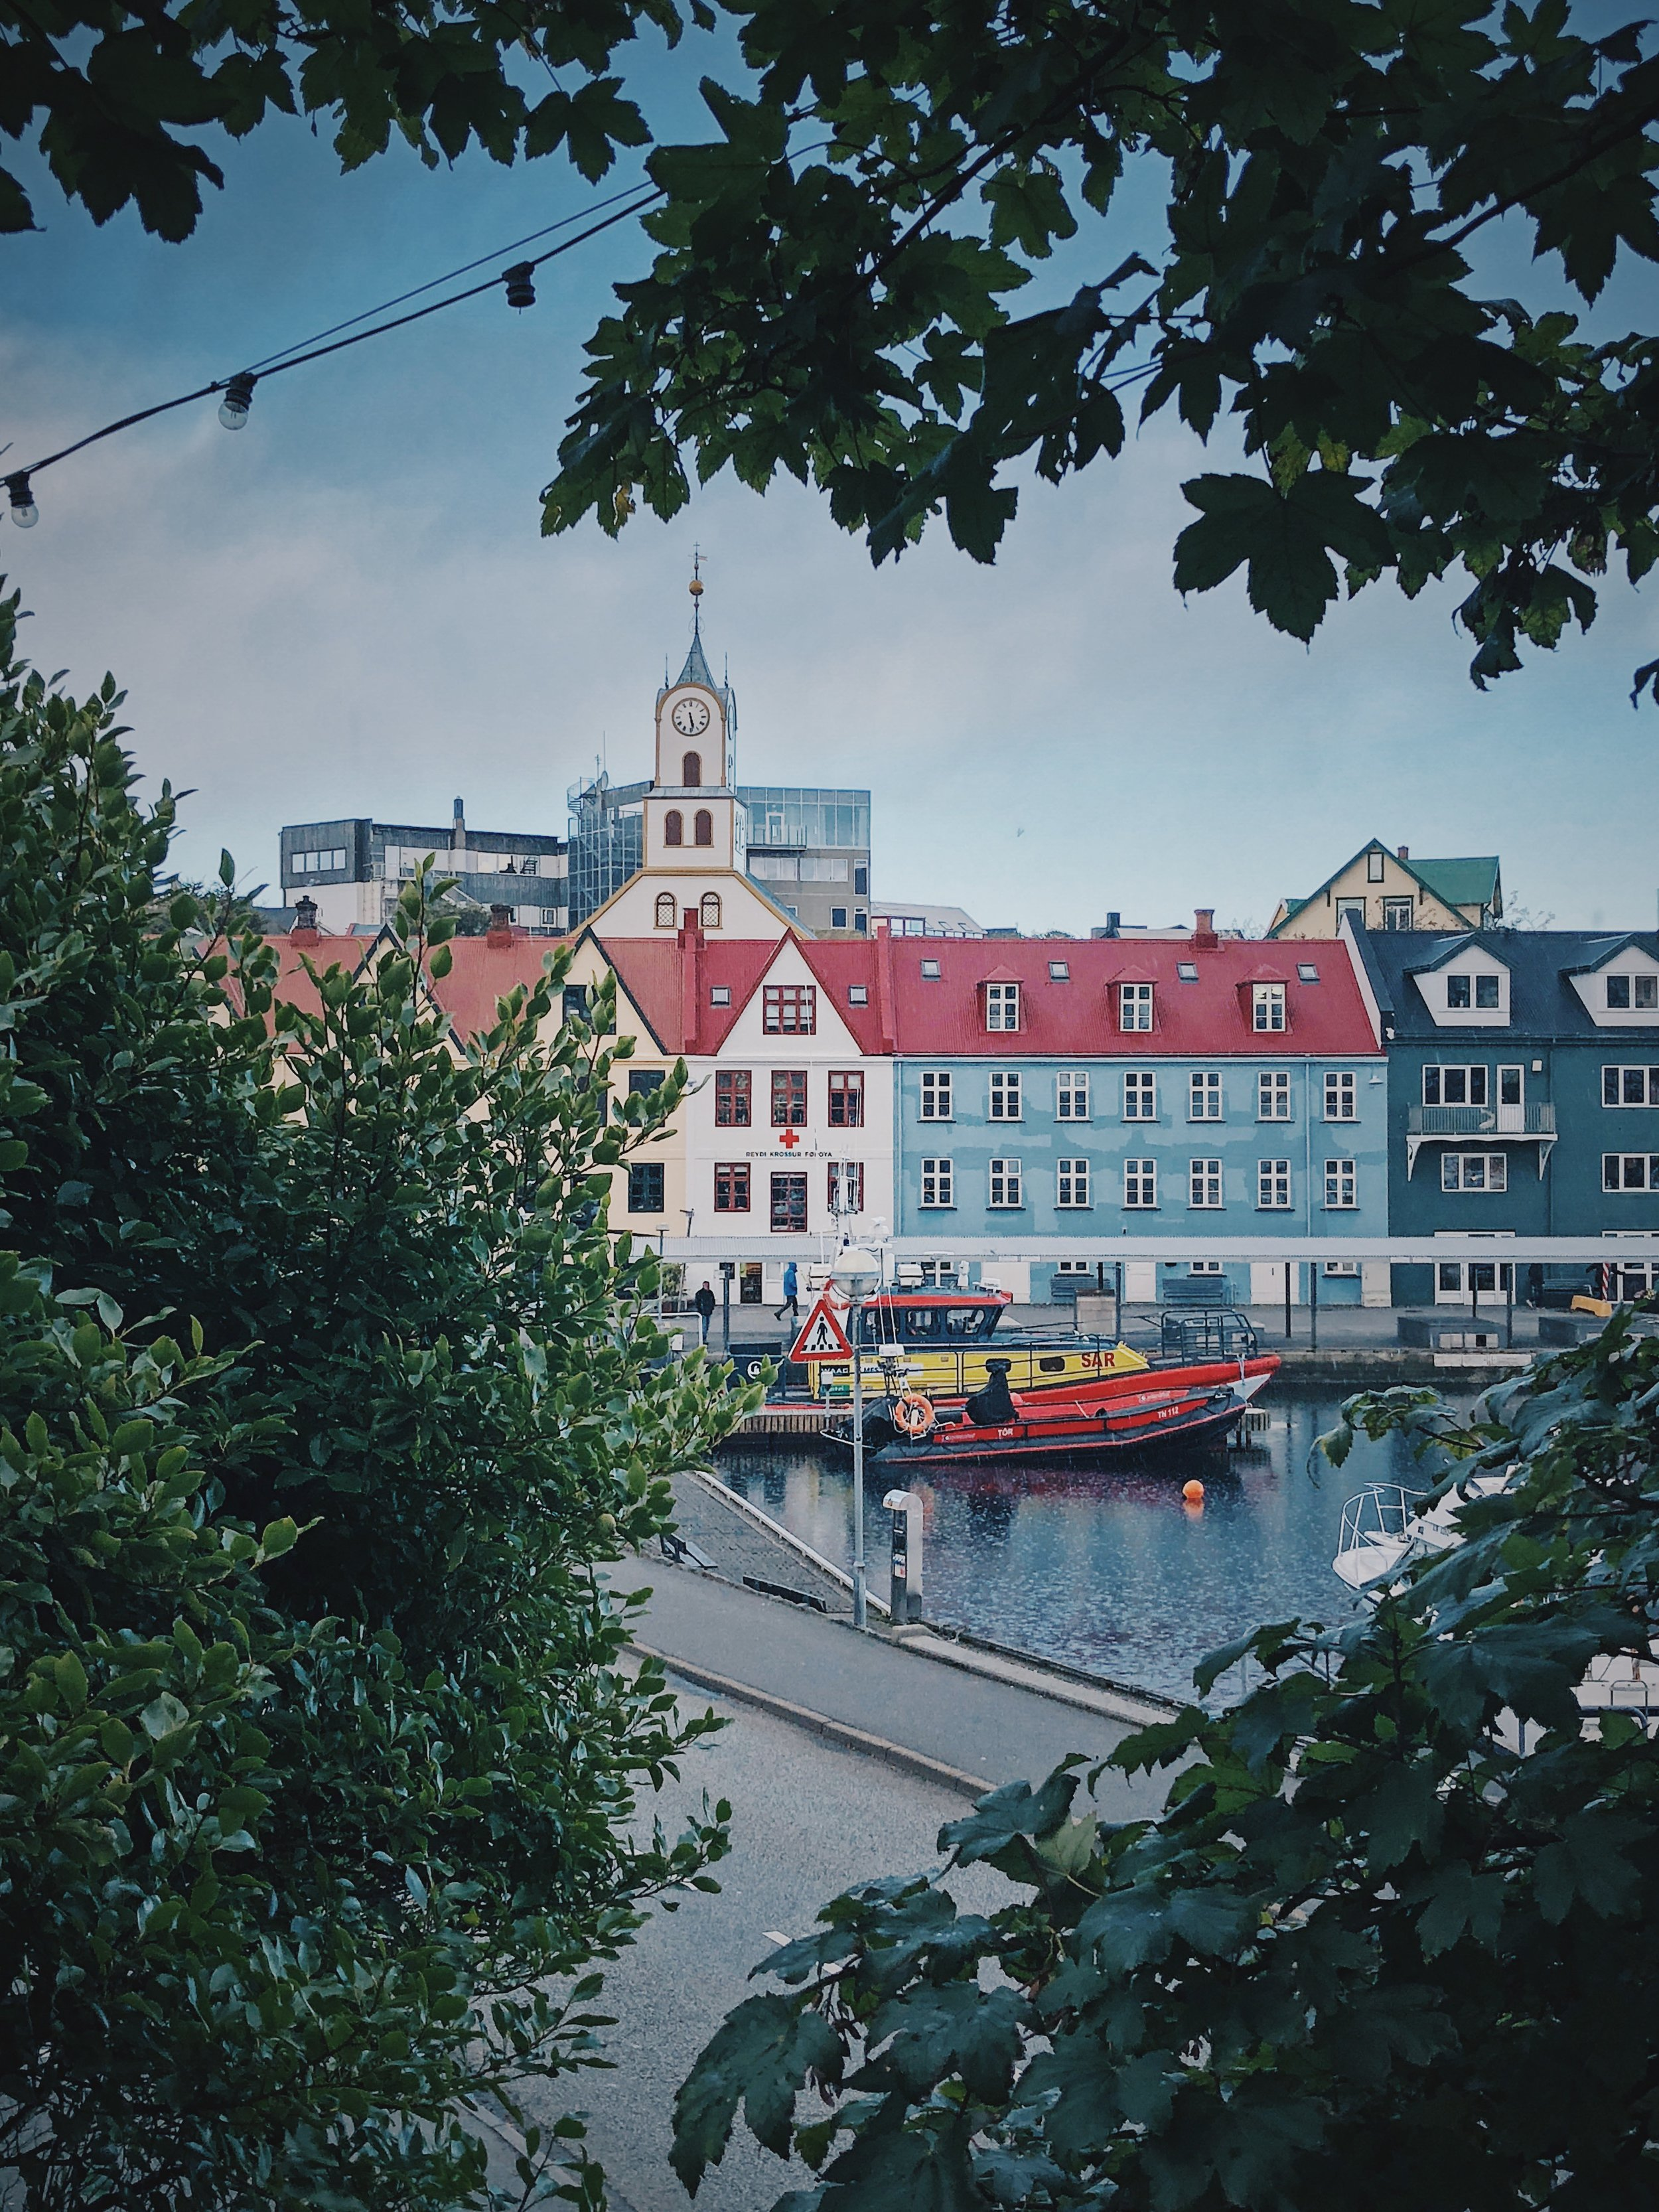 Romantic and beautiful, Tórshavn is both!!